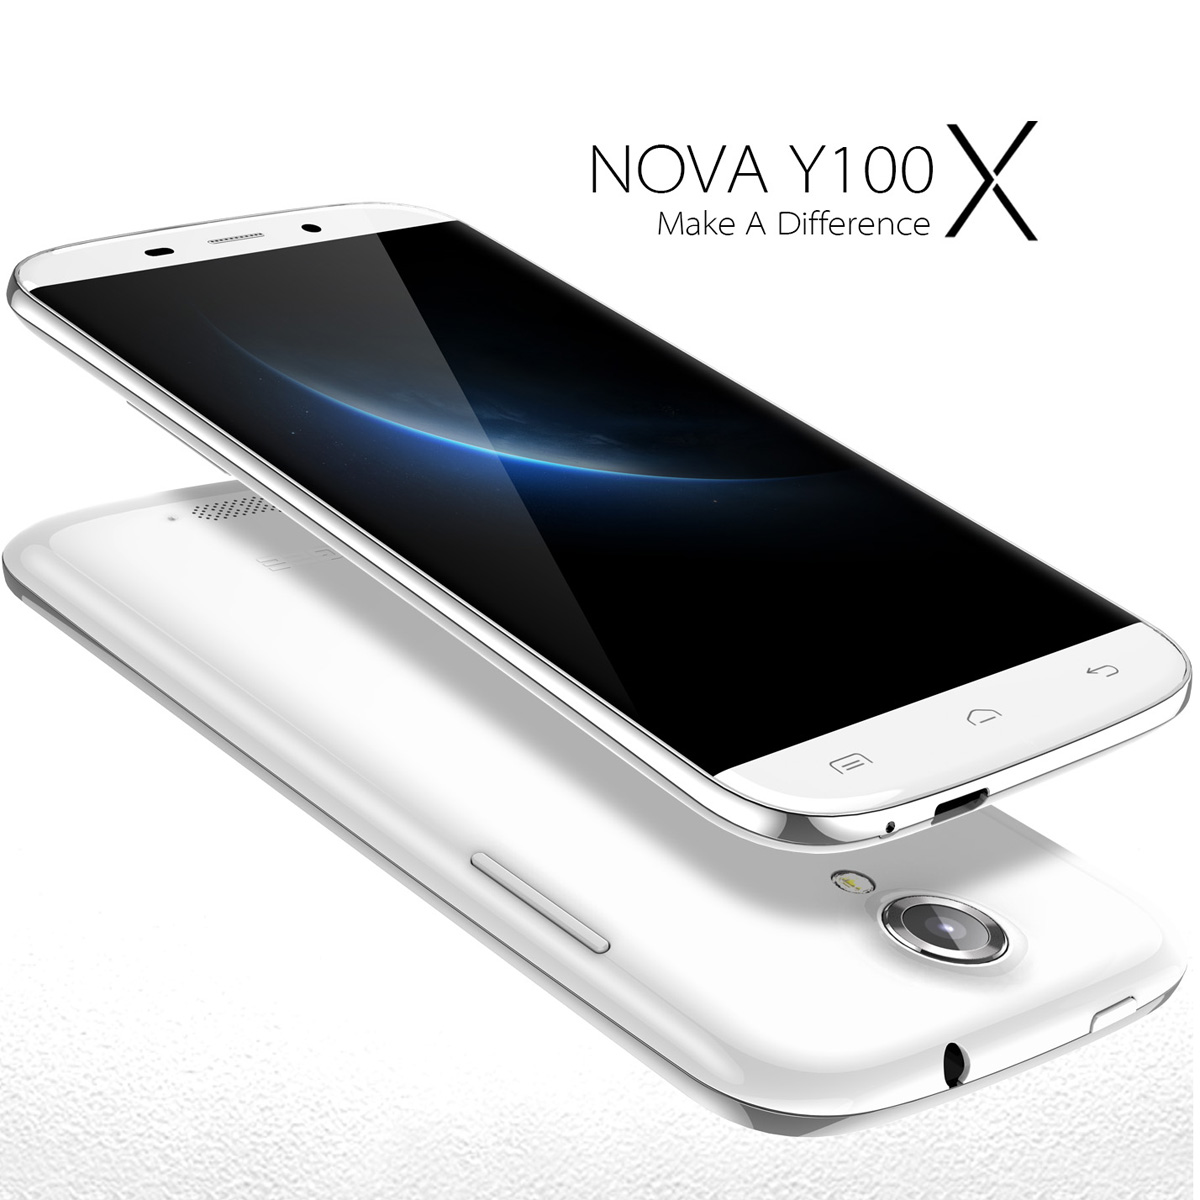 DOOGEE NOVA Y100X Smartphone Bezelless 5.0 Inch OGS Gorilla Glass Android 5.0- White